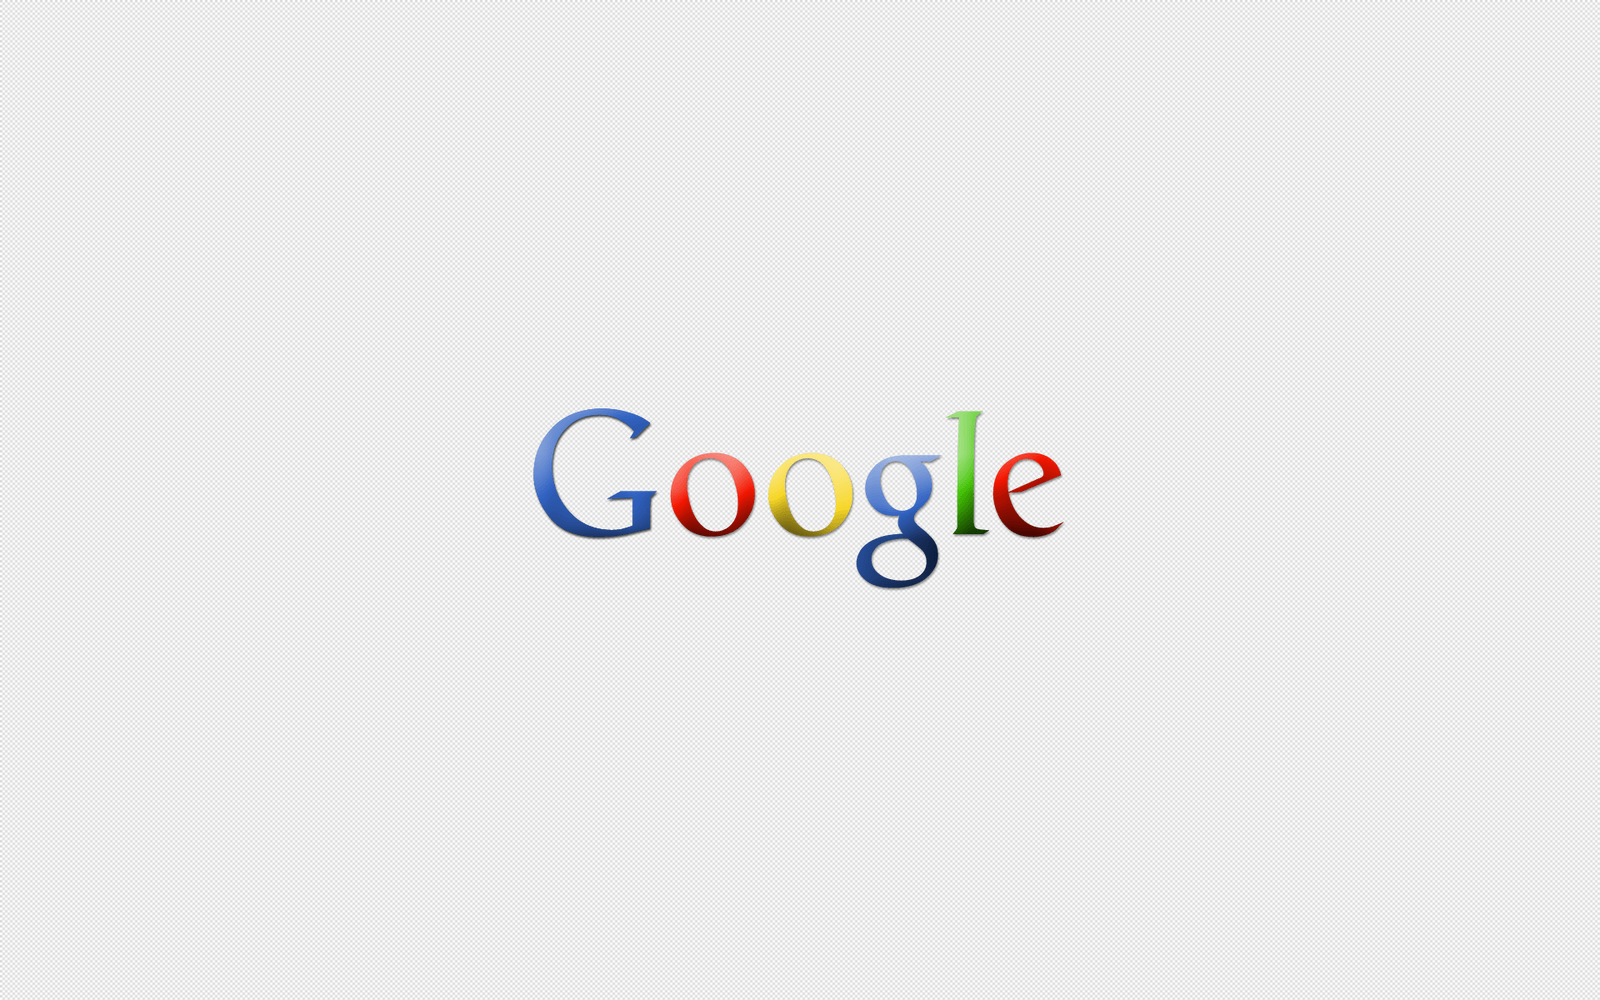 Google Backgrounds - Wallpaper Cave